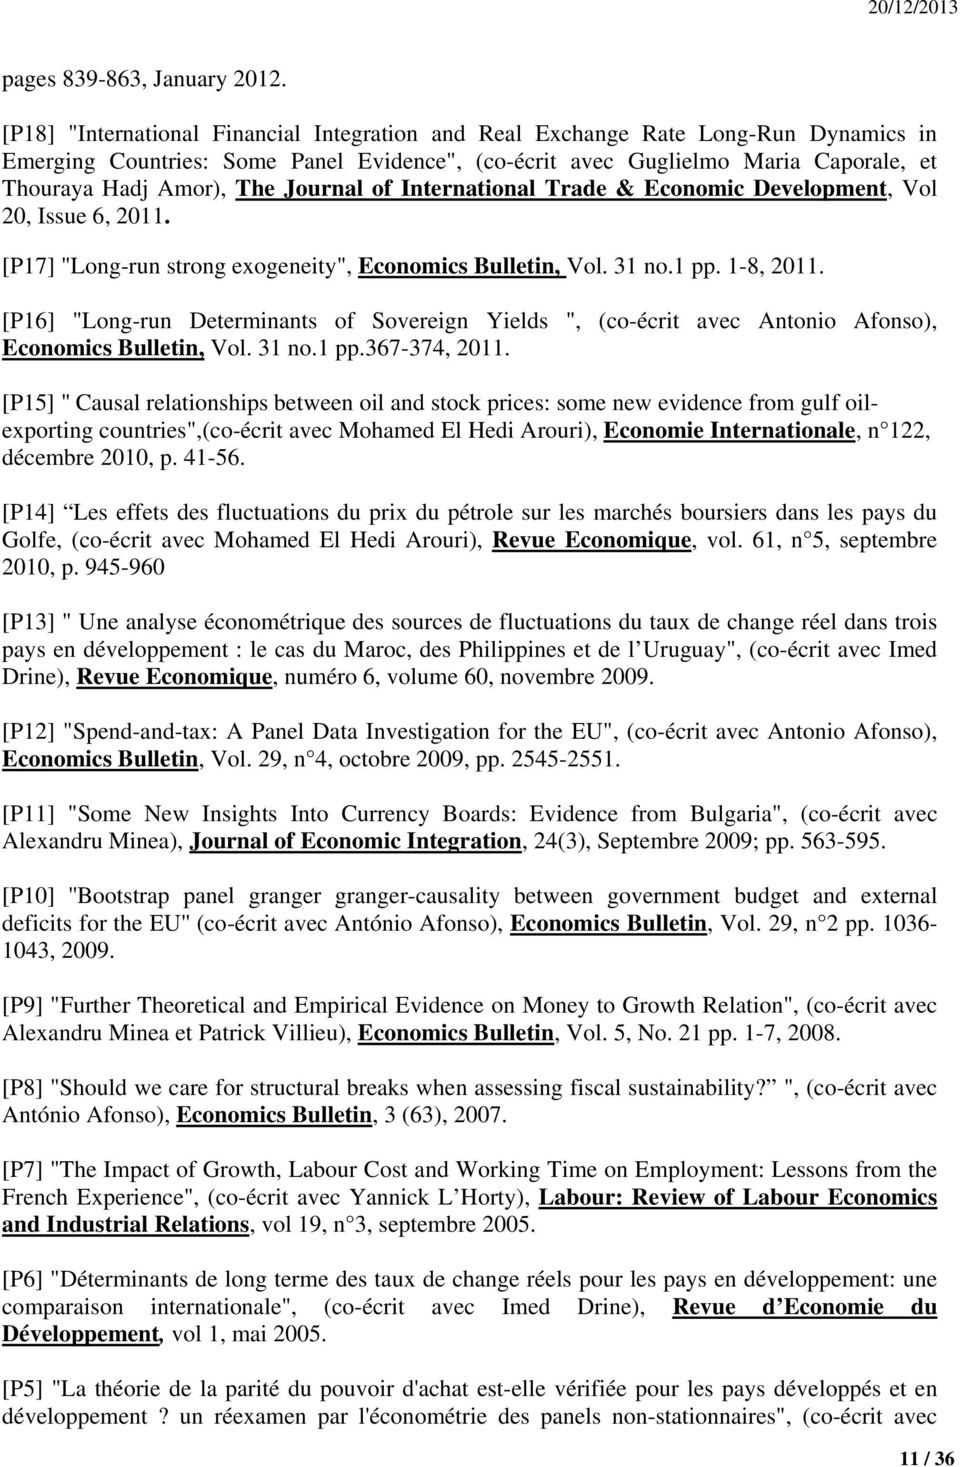 "Journal of International Trade & Economic Development, Vol 20, Issue 6, 2011. [P17] ""Long-run strong exogeneity"", Economics Bulletin, Vol. 31 no.1 pp. 1-8, 2011."